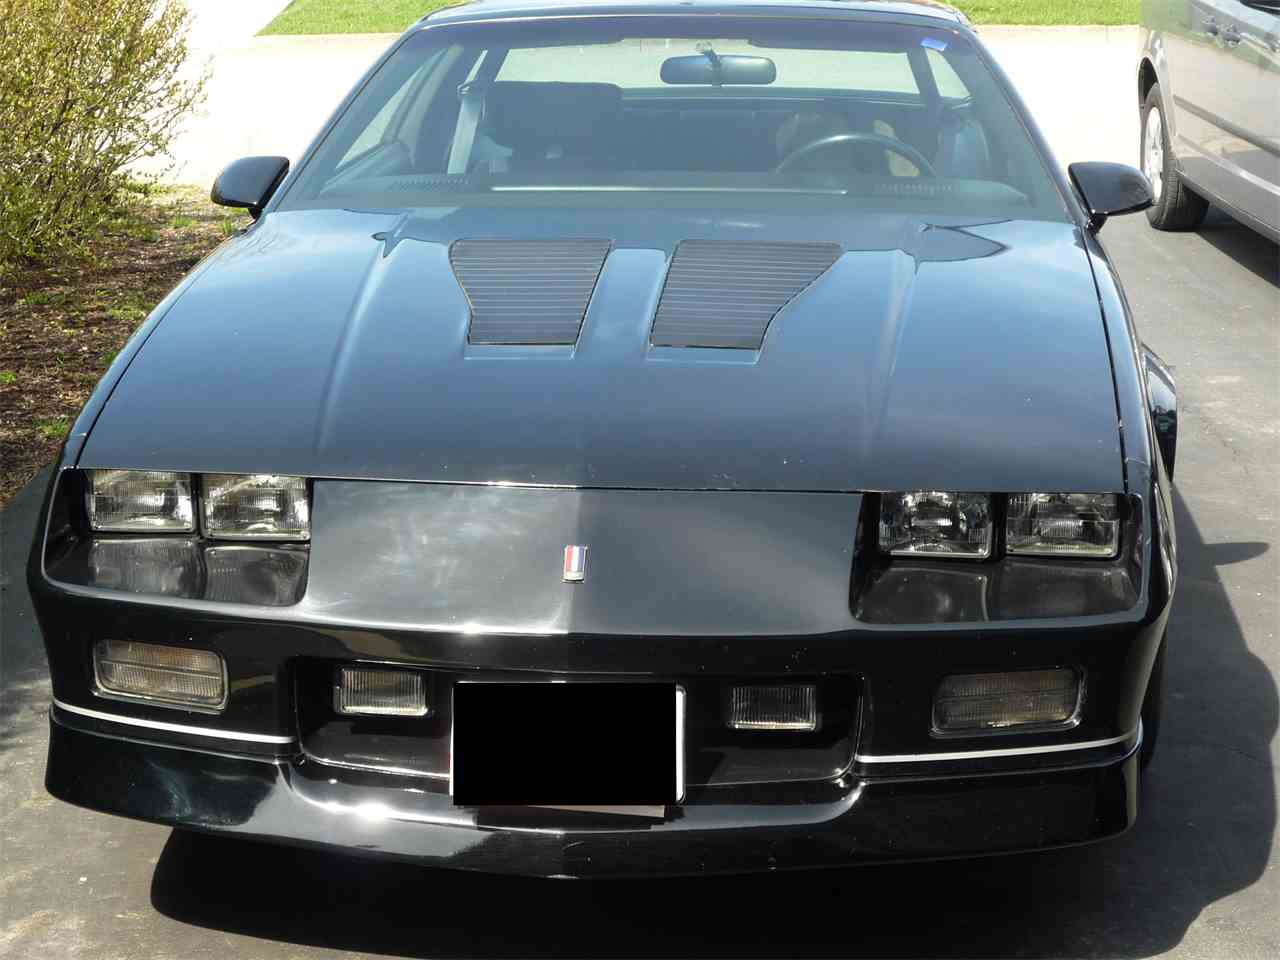 Large Picture of '86 Camaro IROC-Z - $12,000.00 Offered by a Private Seller - GK6I